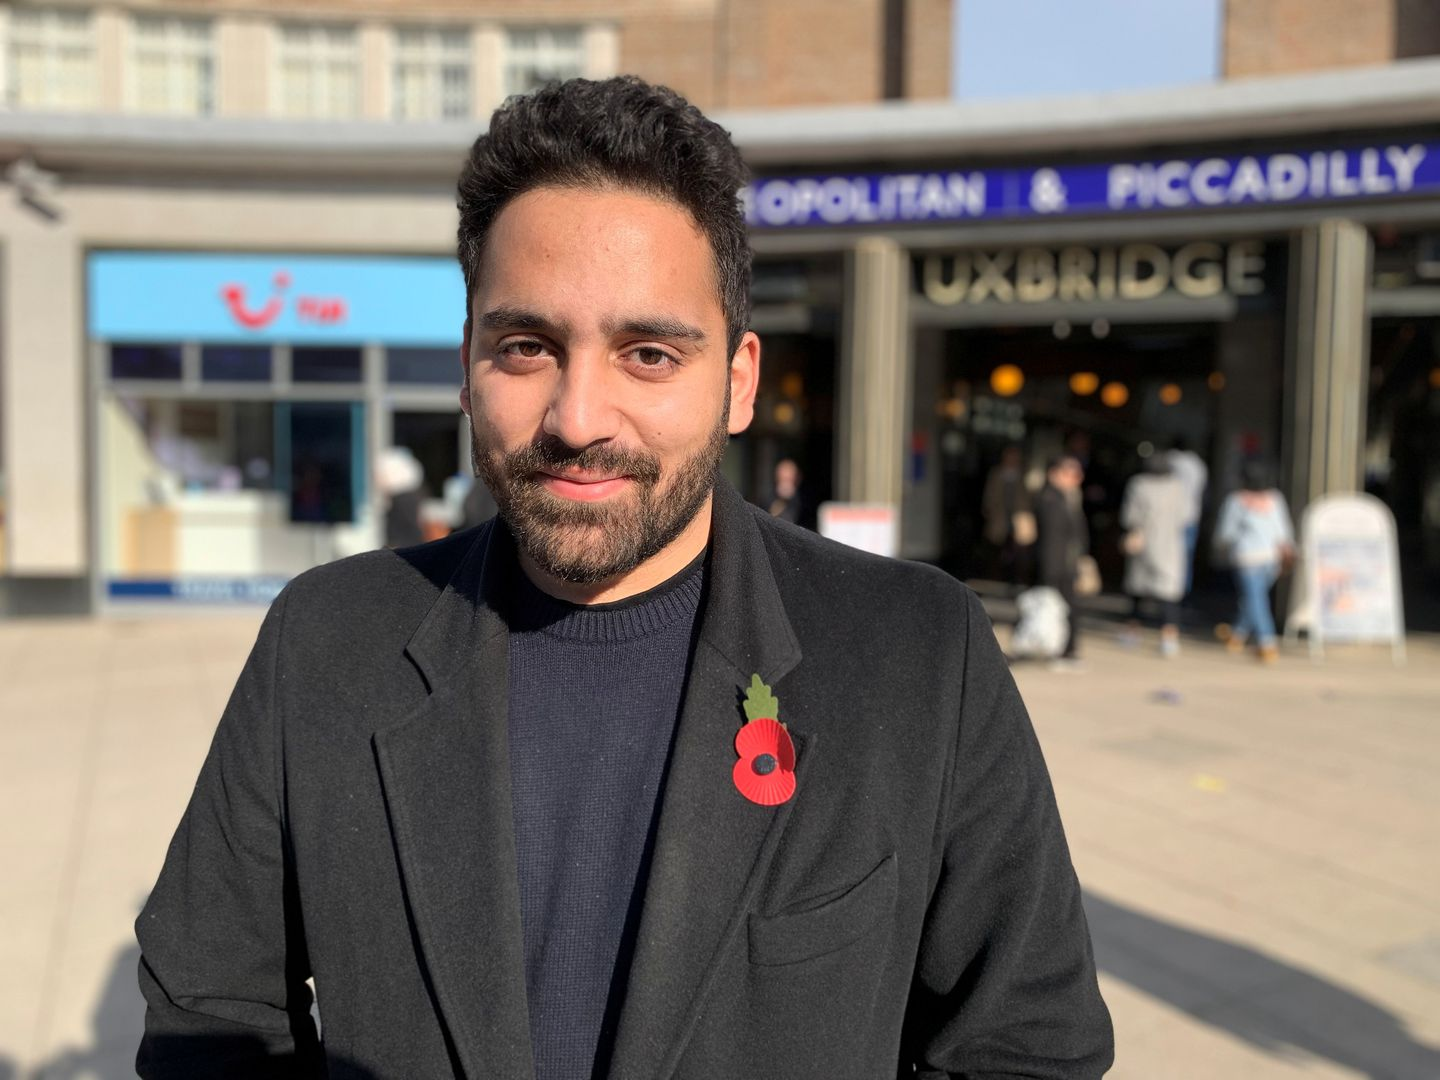 Can Boris Johnson Keep his Seat? A Young Muslim Immigrant is Challenging the British Prime Minister